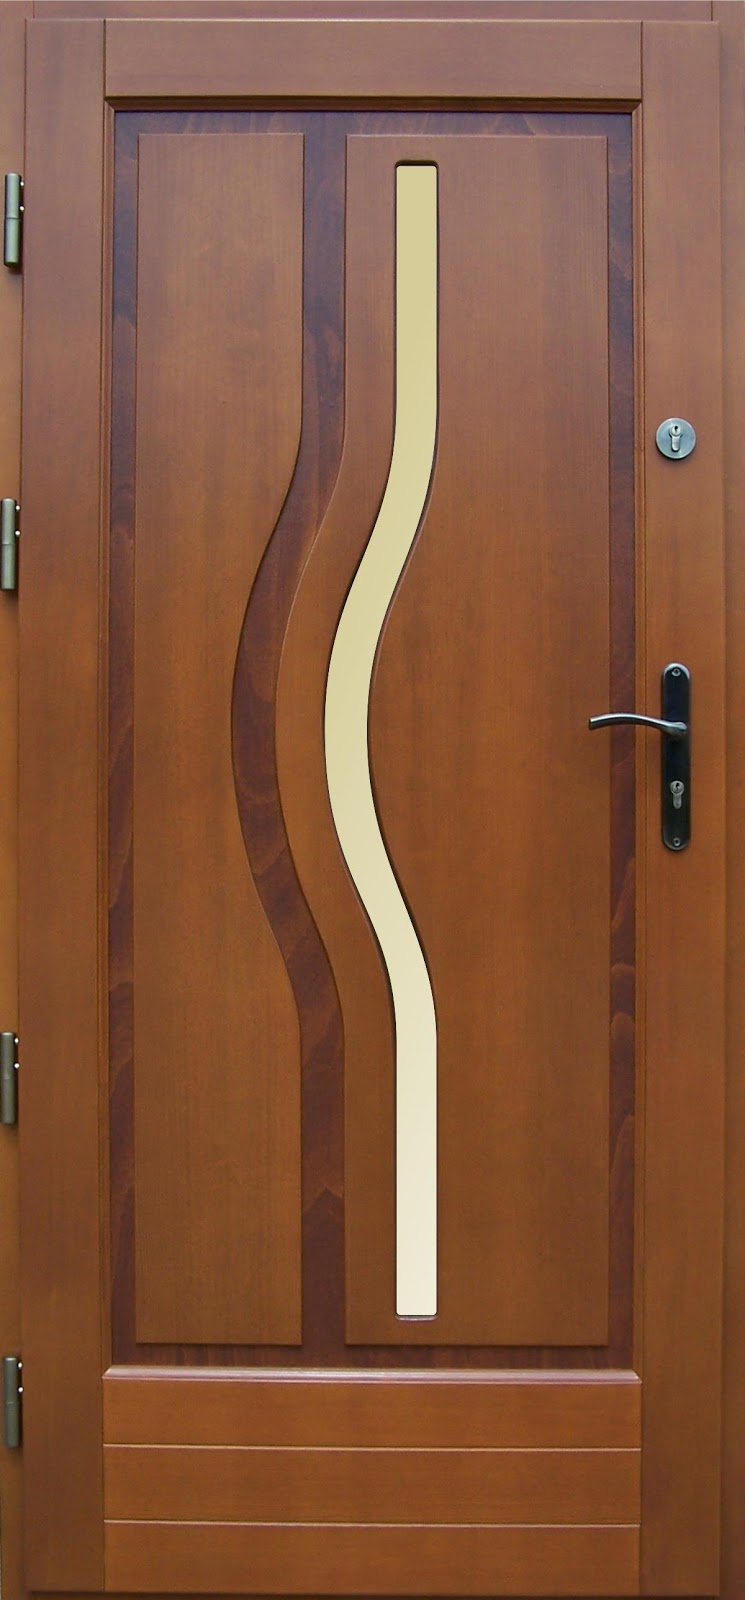 Doors Design: Foundation Dezin & Decor...: Doors Design